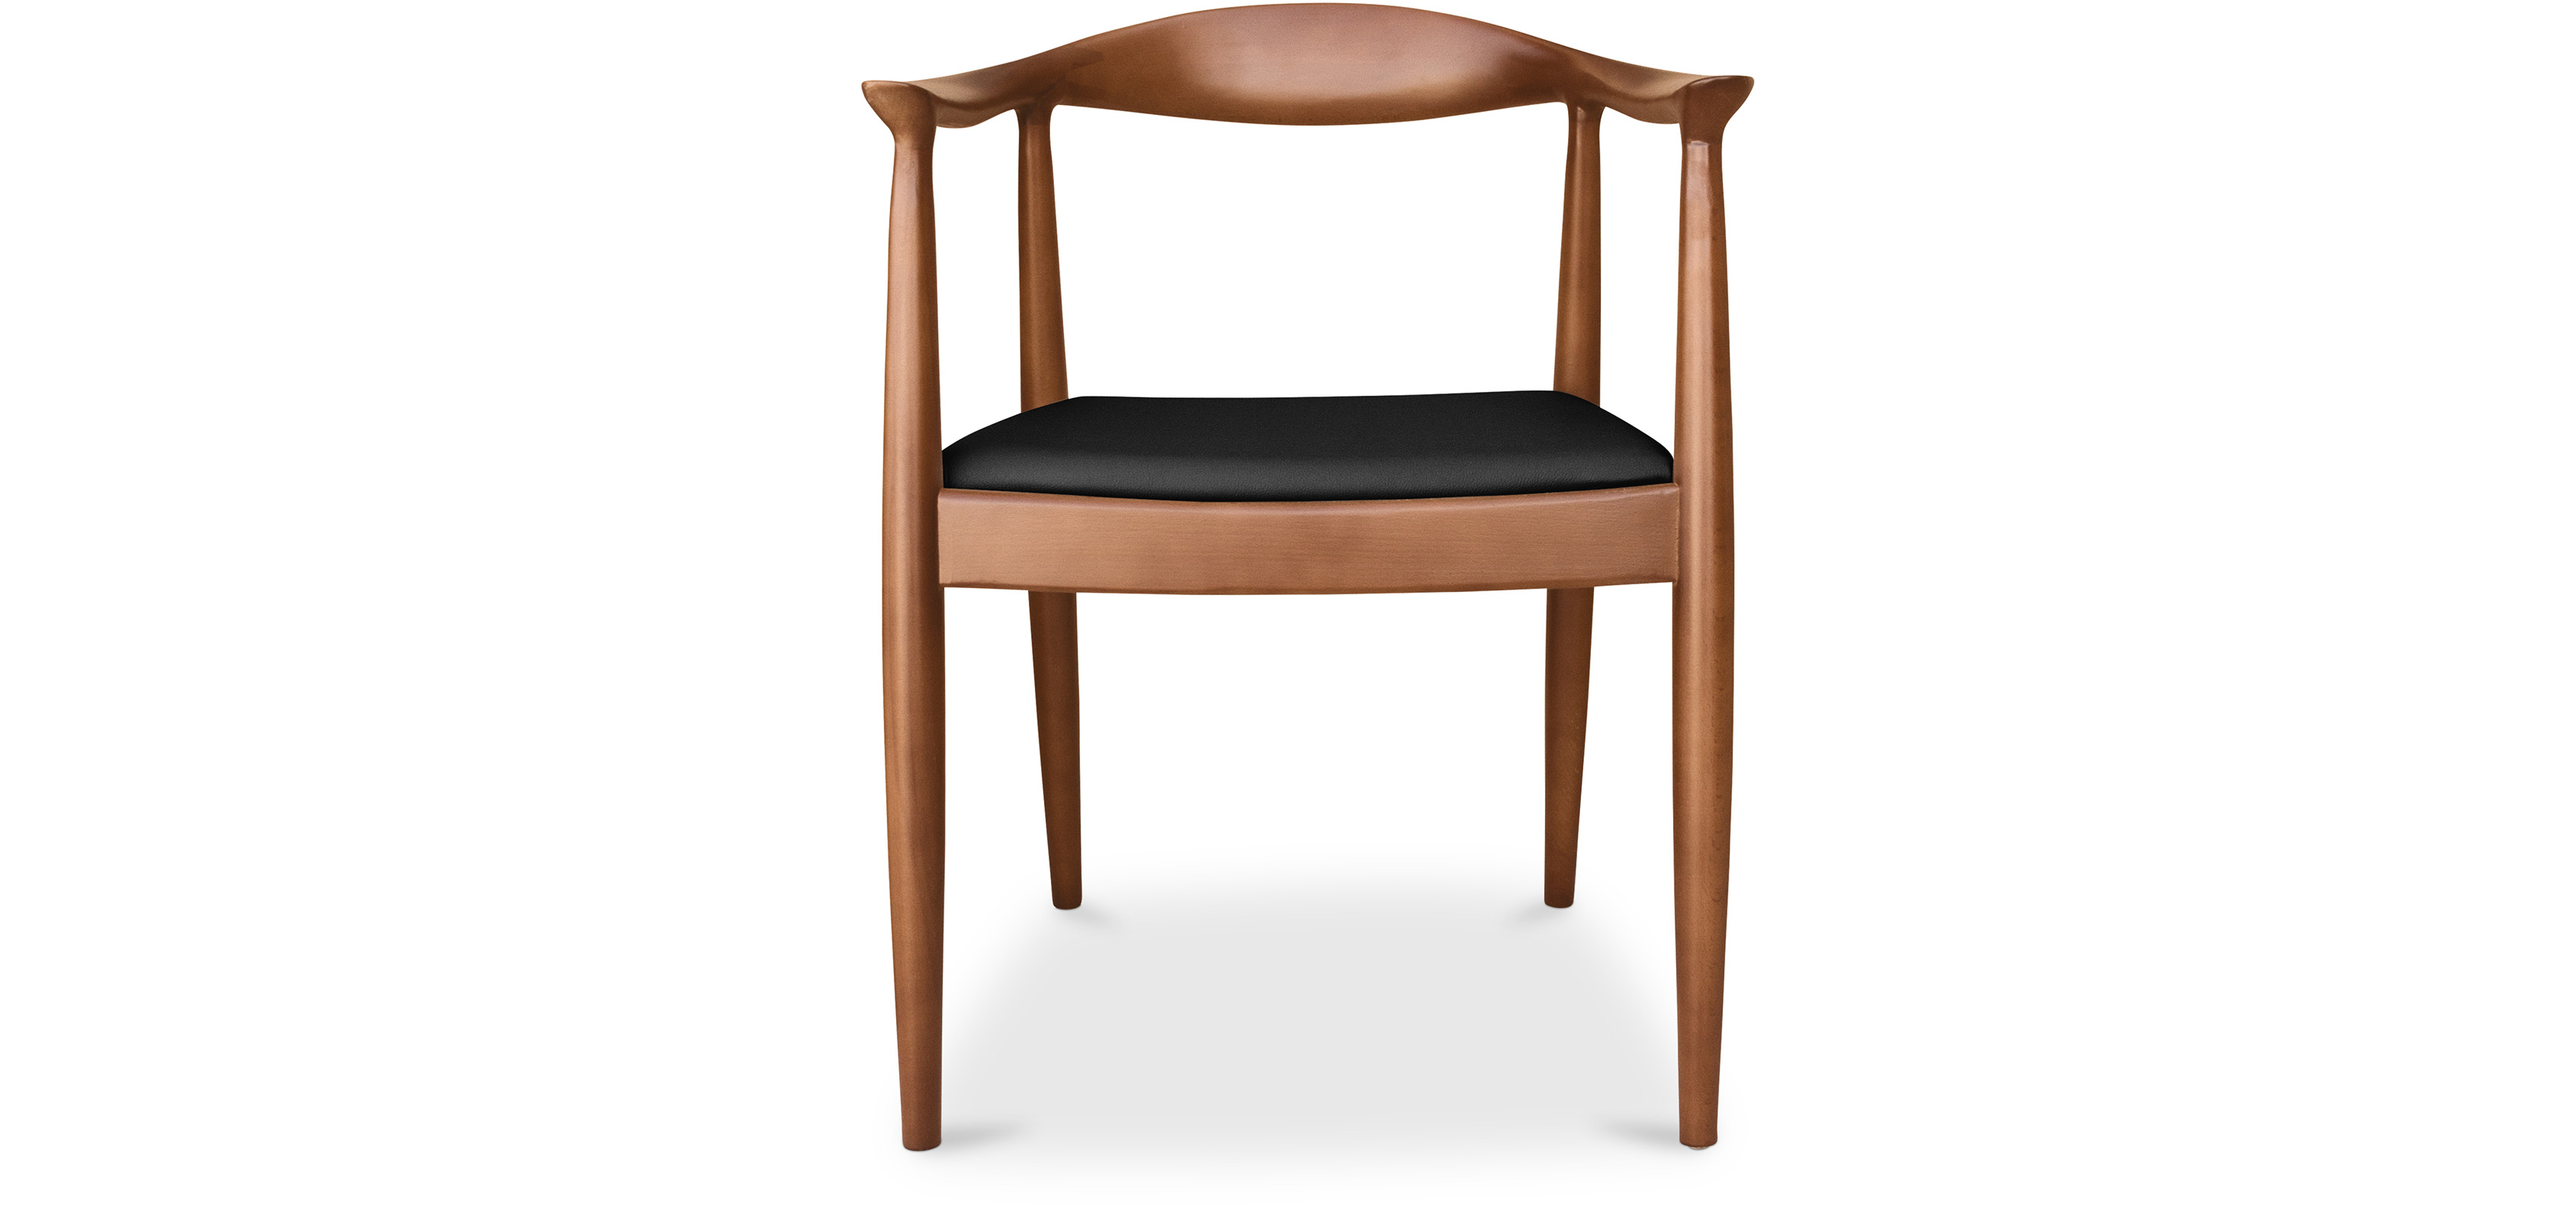 The chair scandinavian style chair hans j wegner style faux leather living room chairs - Hans wegner style chair ...